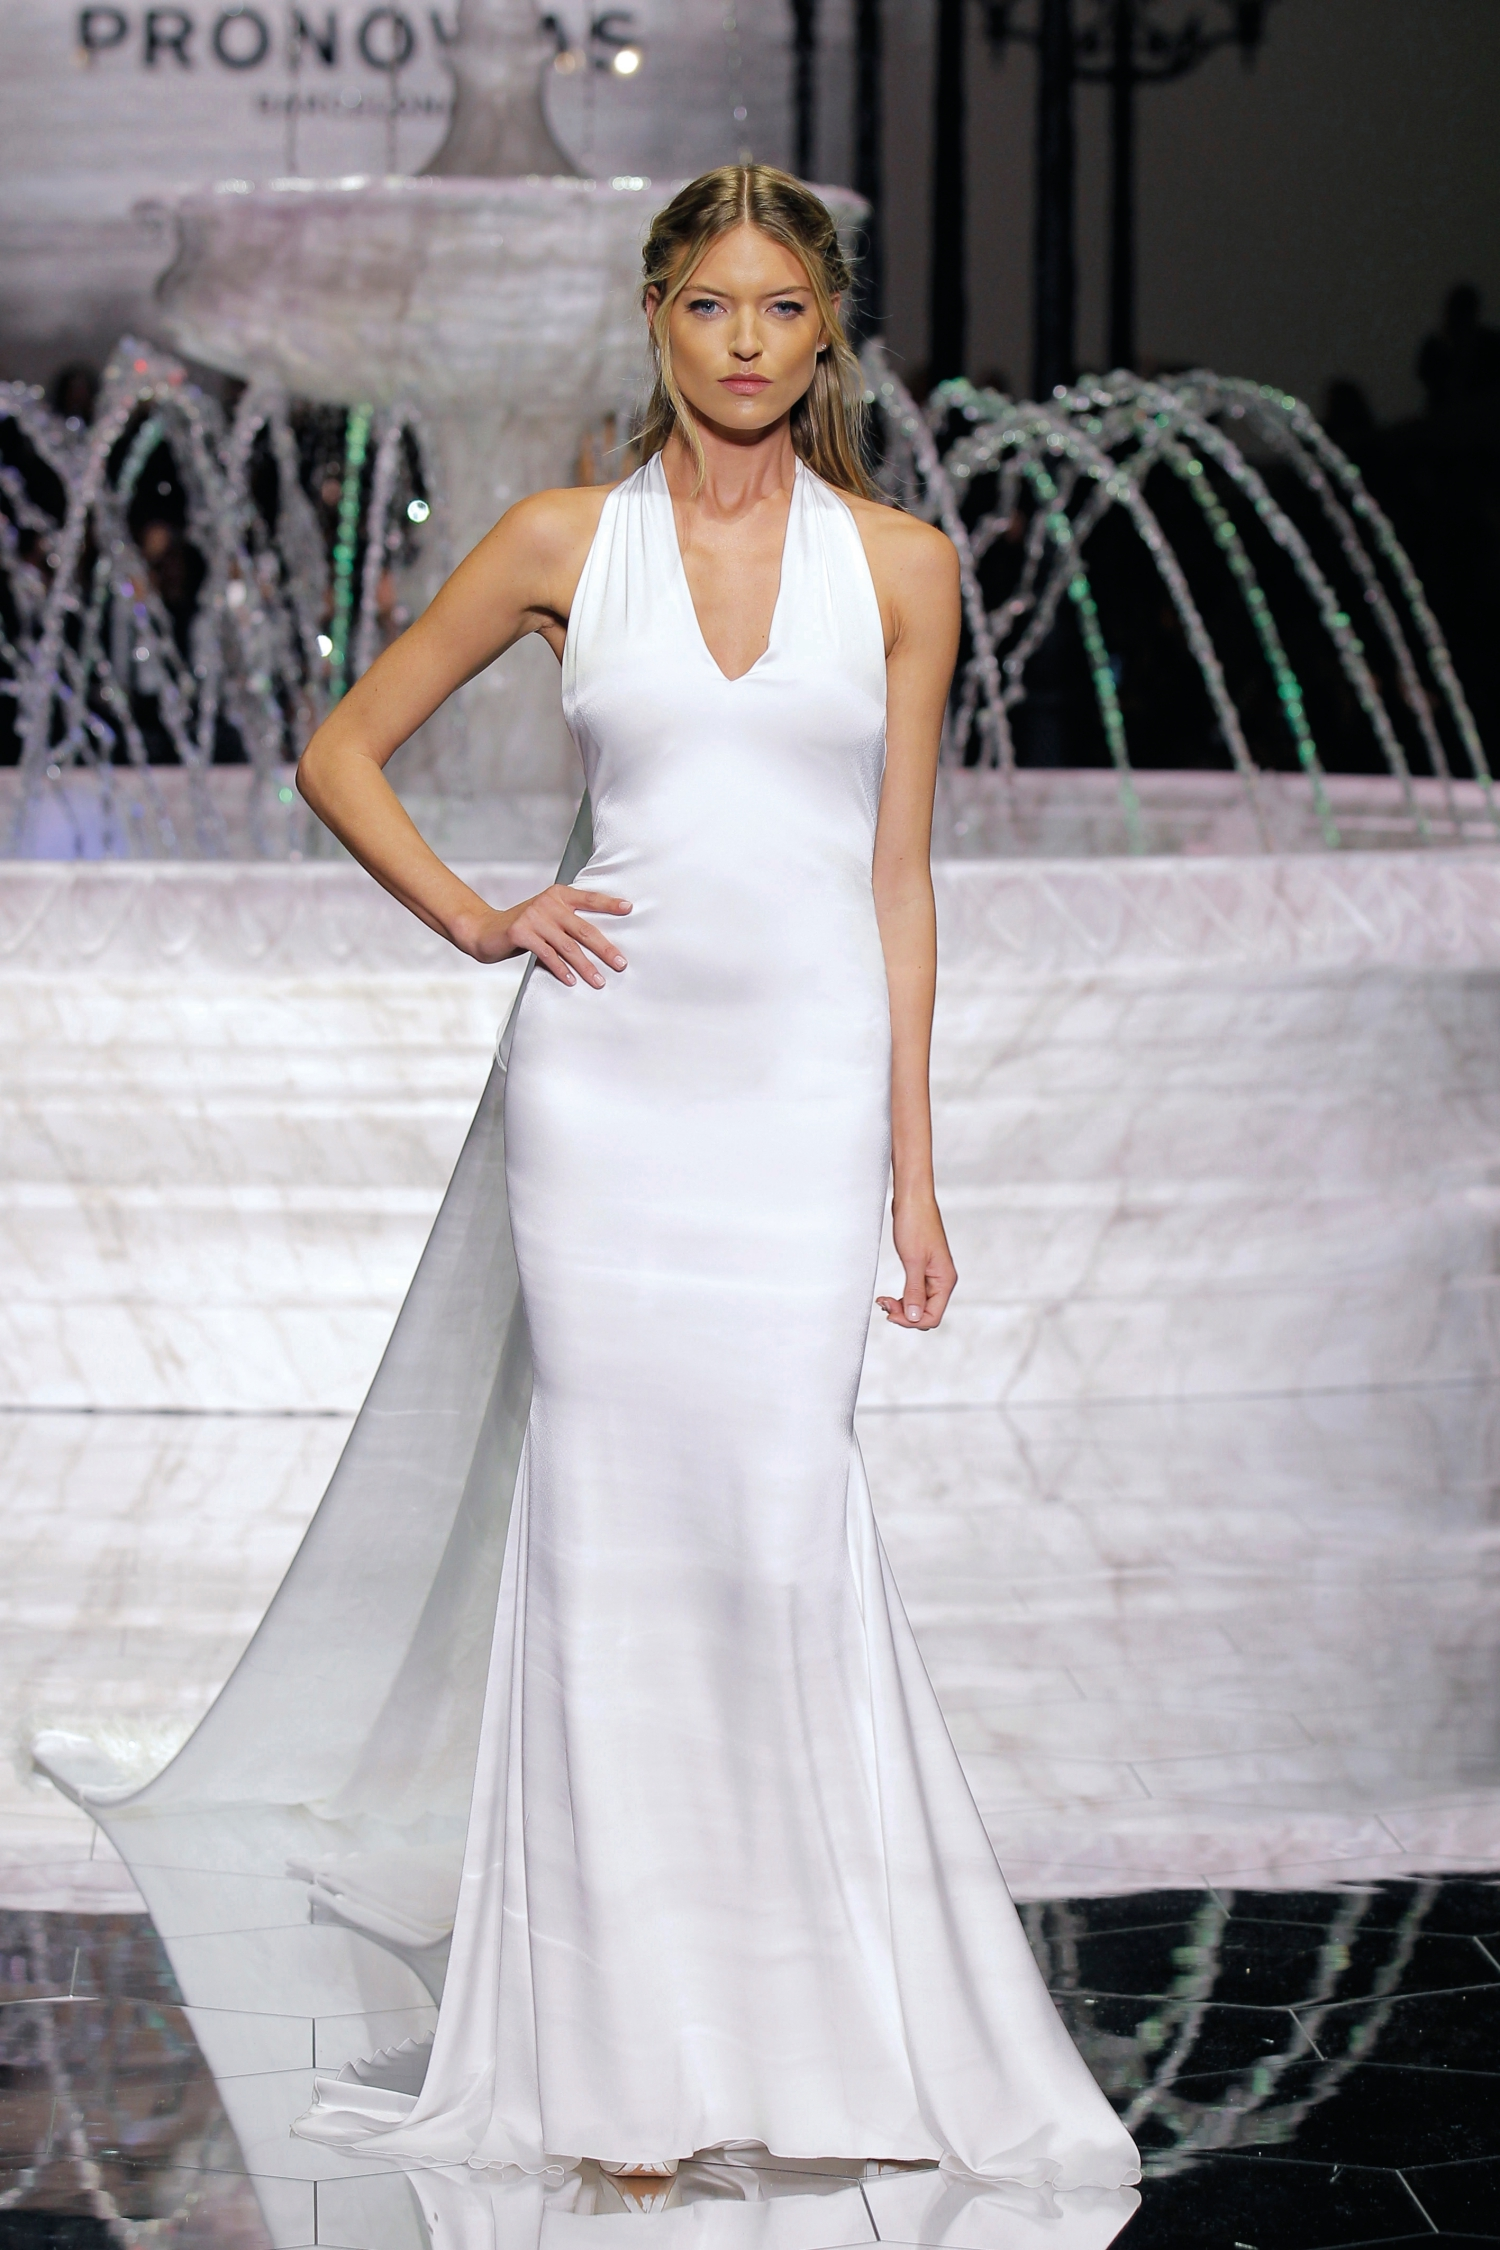 1-PRONOVIAS FASHION SHOW_Roma